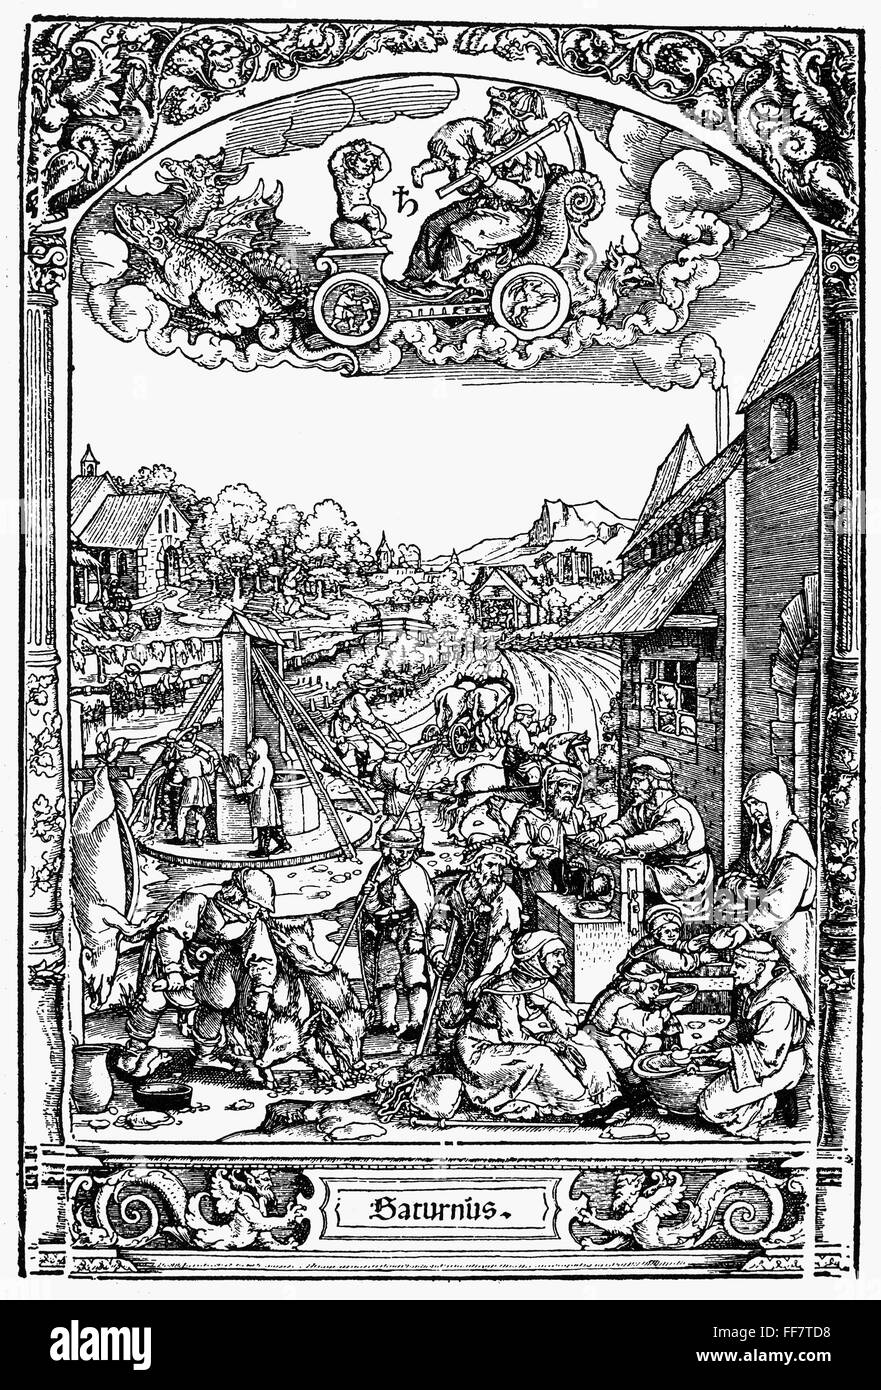 /nAllegoric representation of the Life of the Children of the planet Saturn.  Woodcut, German, 16th century.